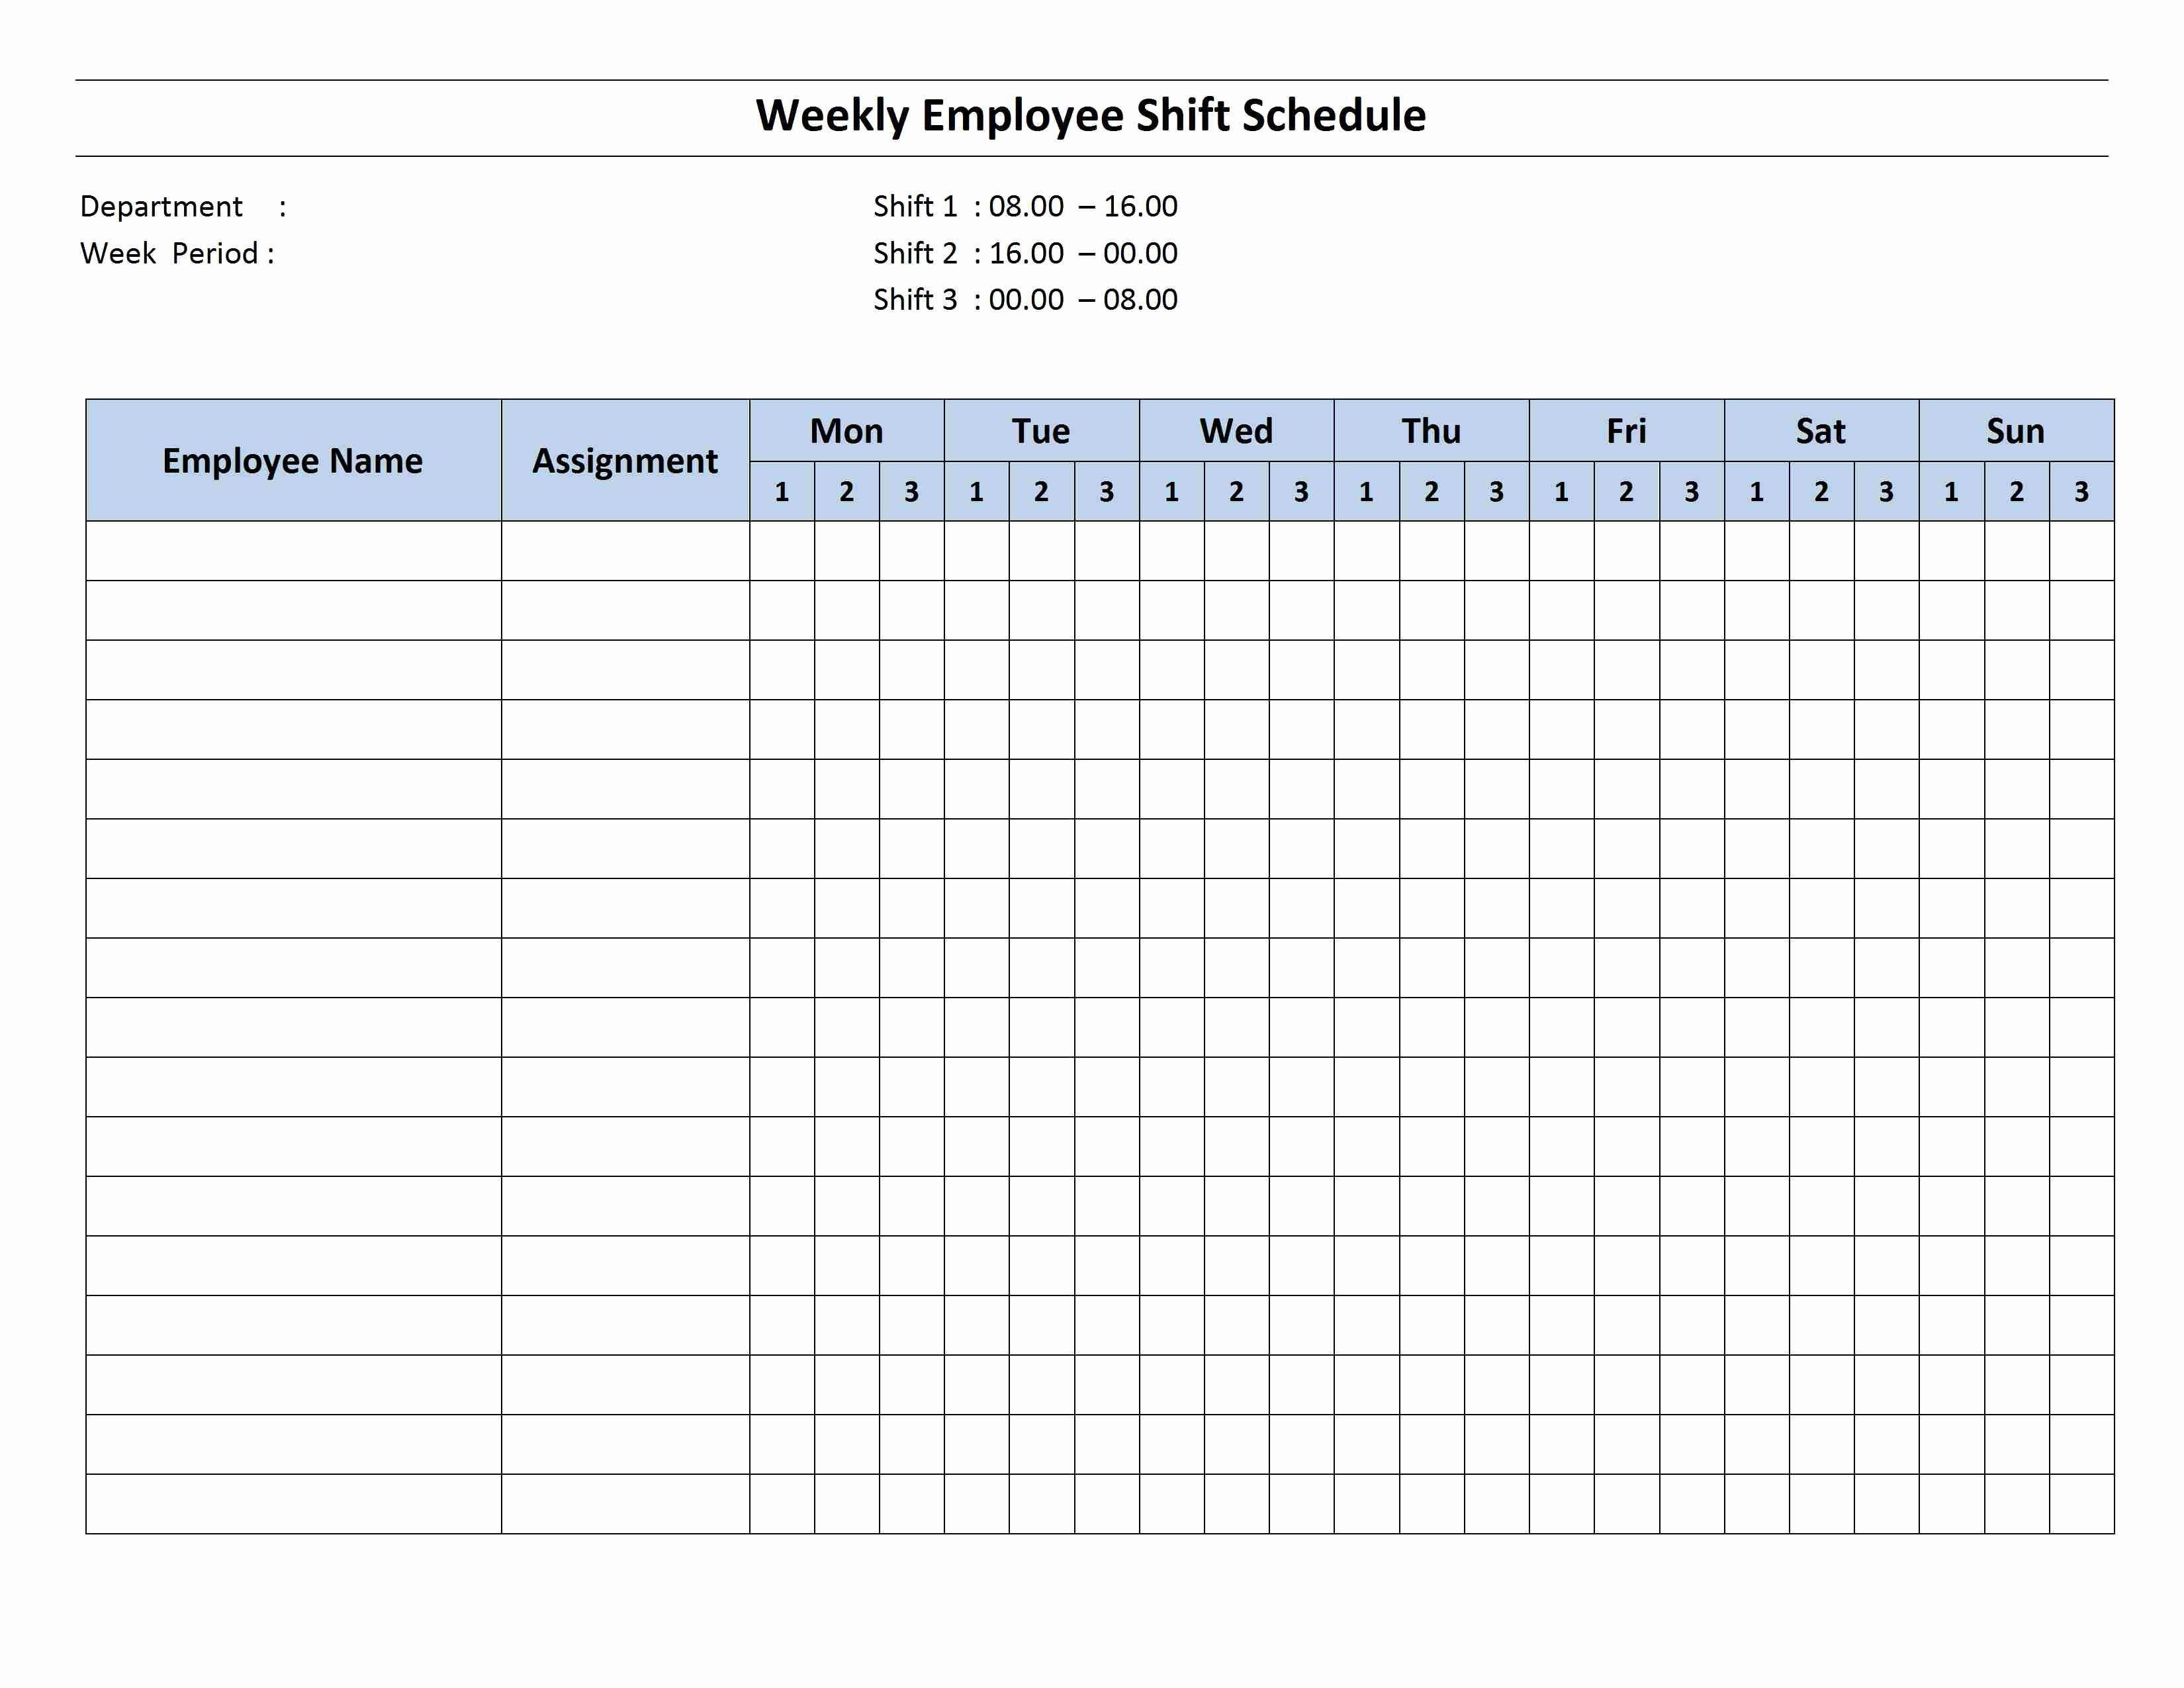 Weekly Employee Shift Schedule Template Luxury Weekly 8 Hour Shift Schedule